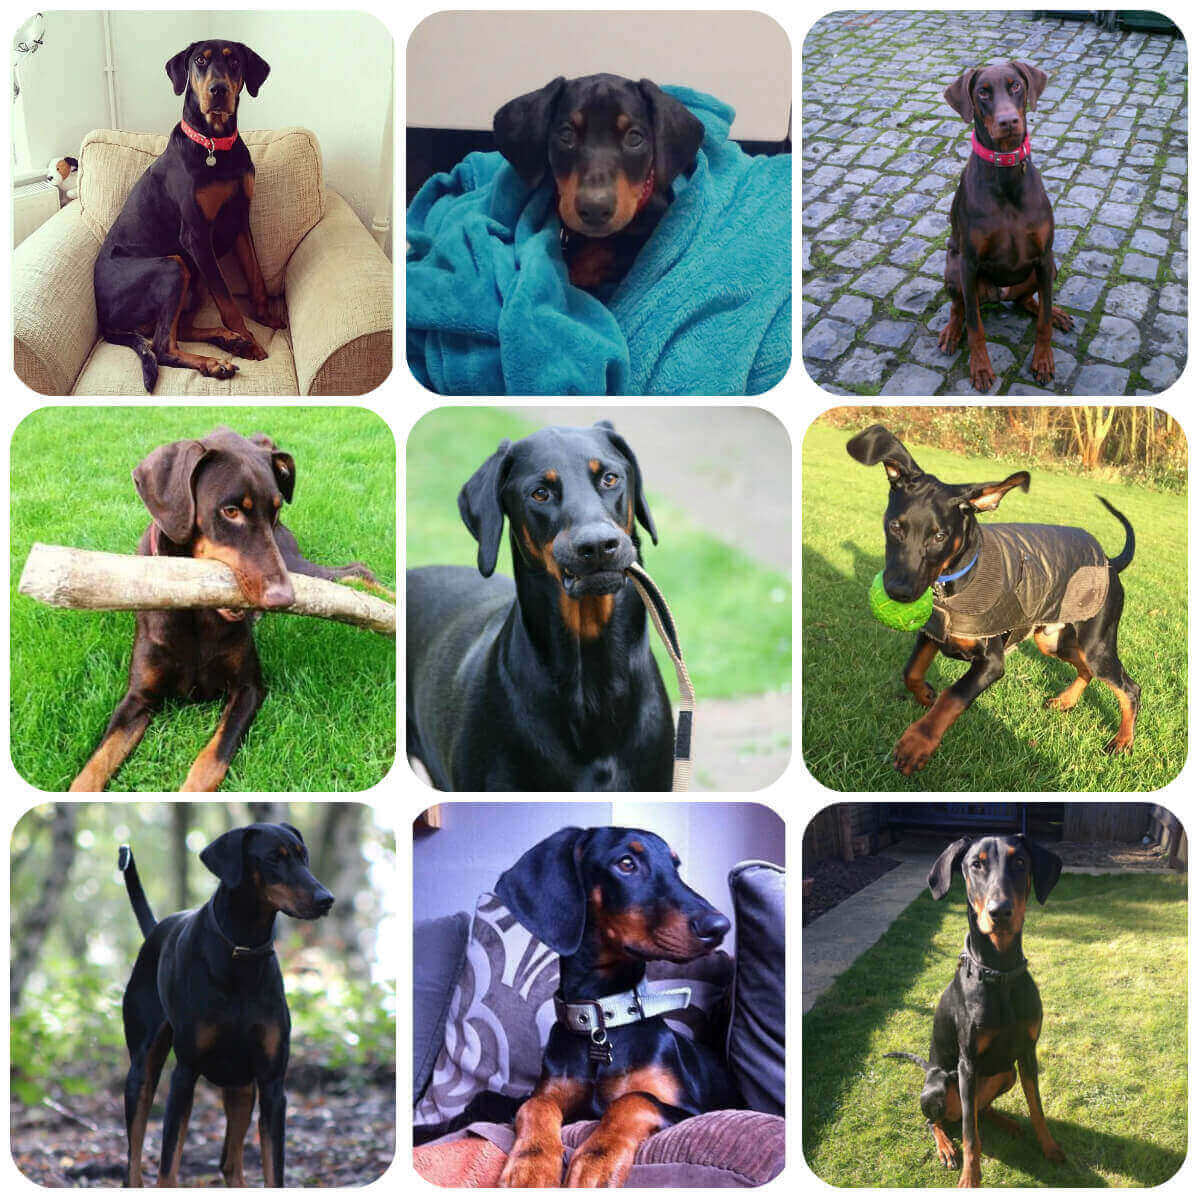 A collage of doberman dogs and puppies, part of BorrowMyDoggy's guide to dog breeds.